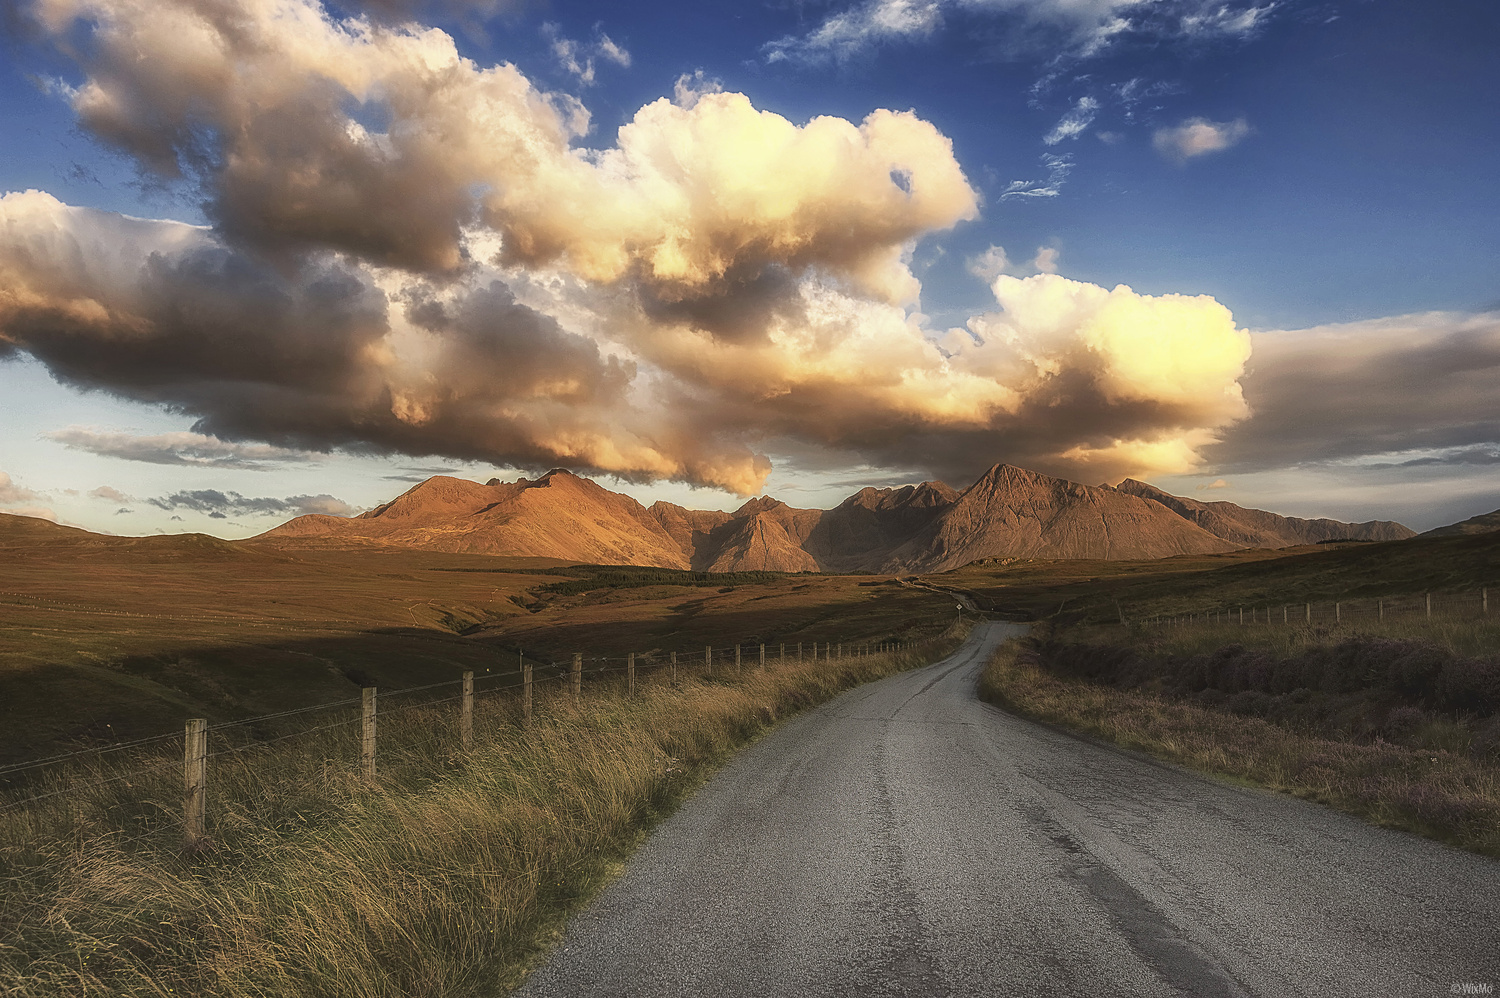 The Road And The Hills by Wix Mo